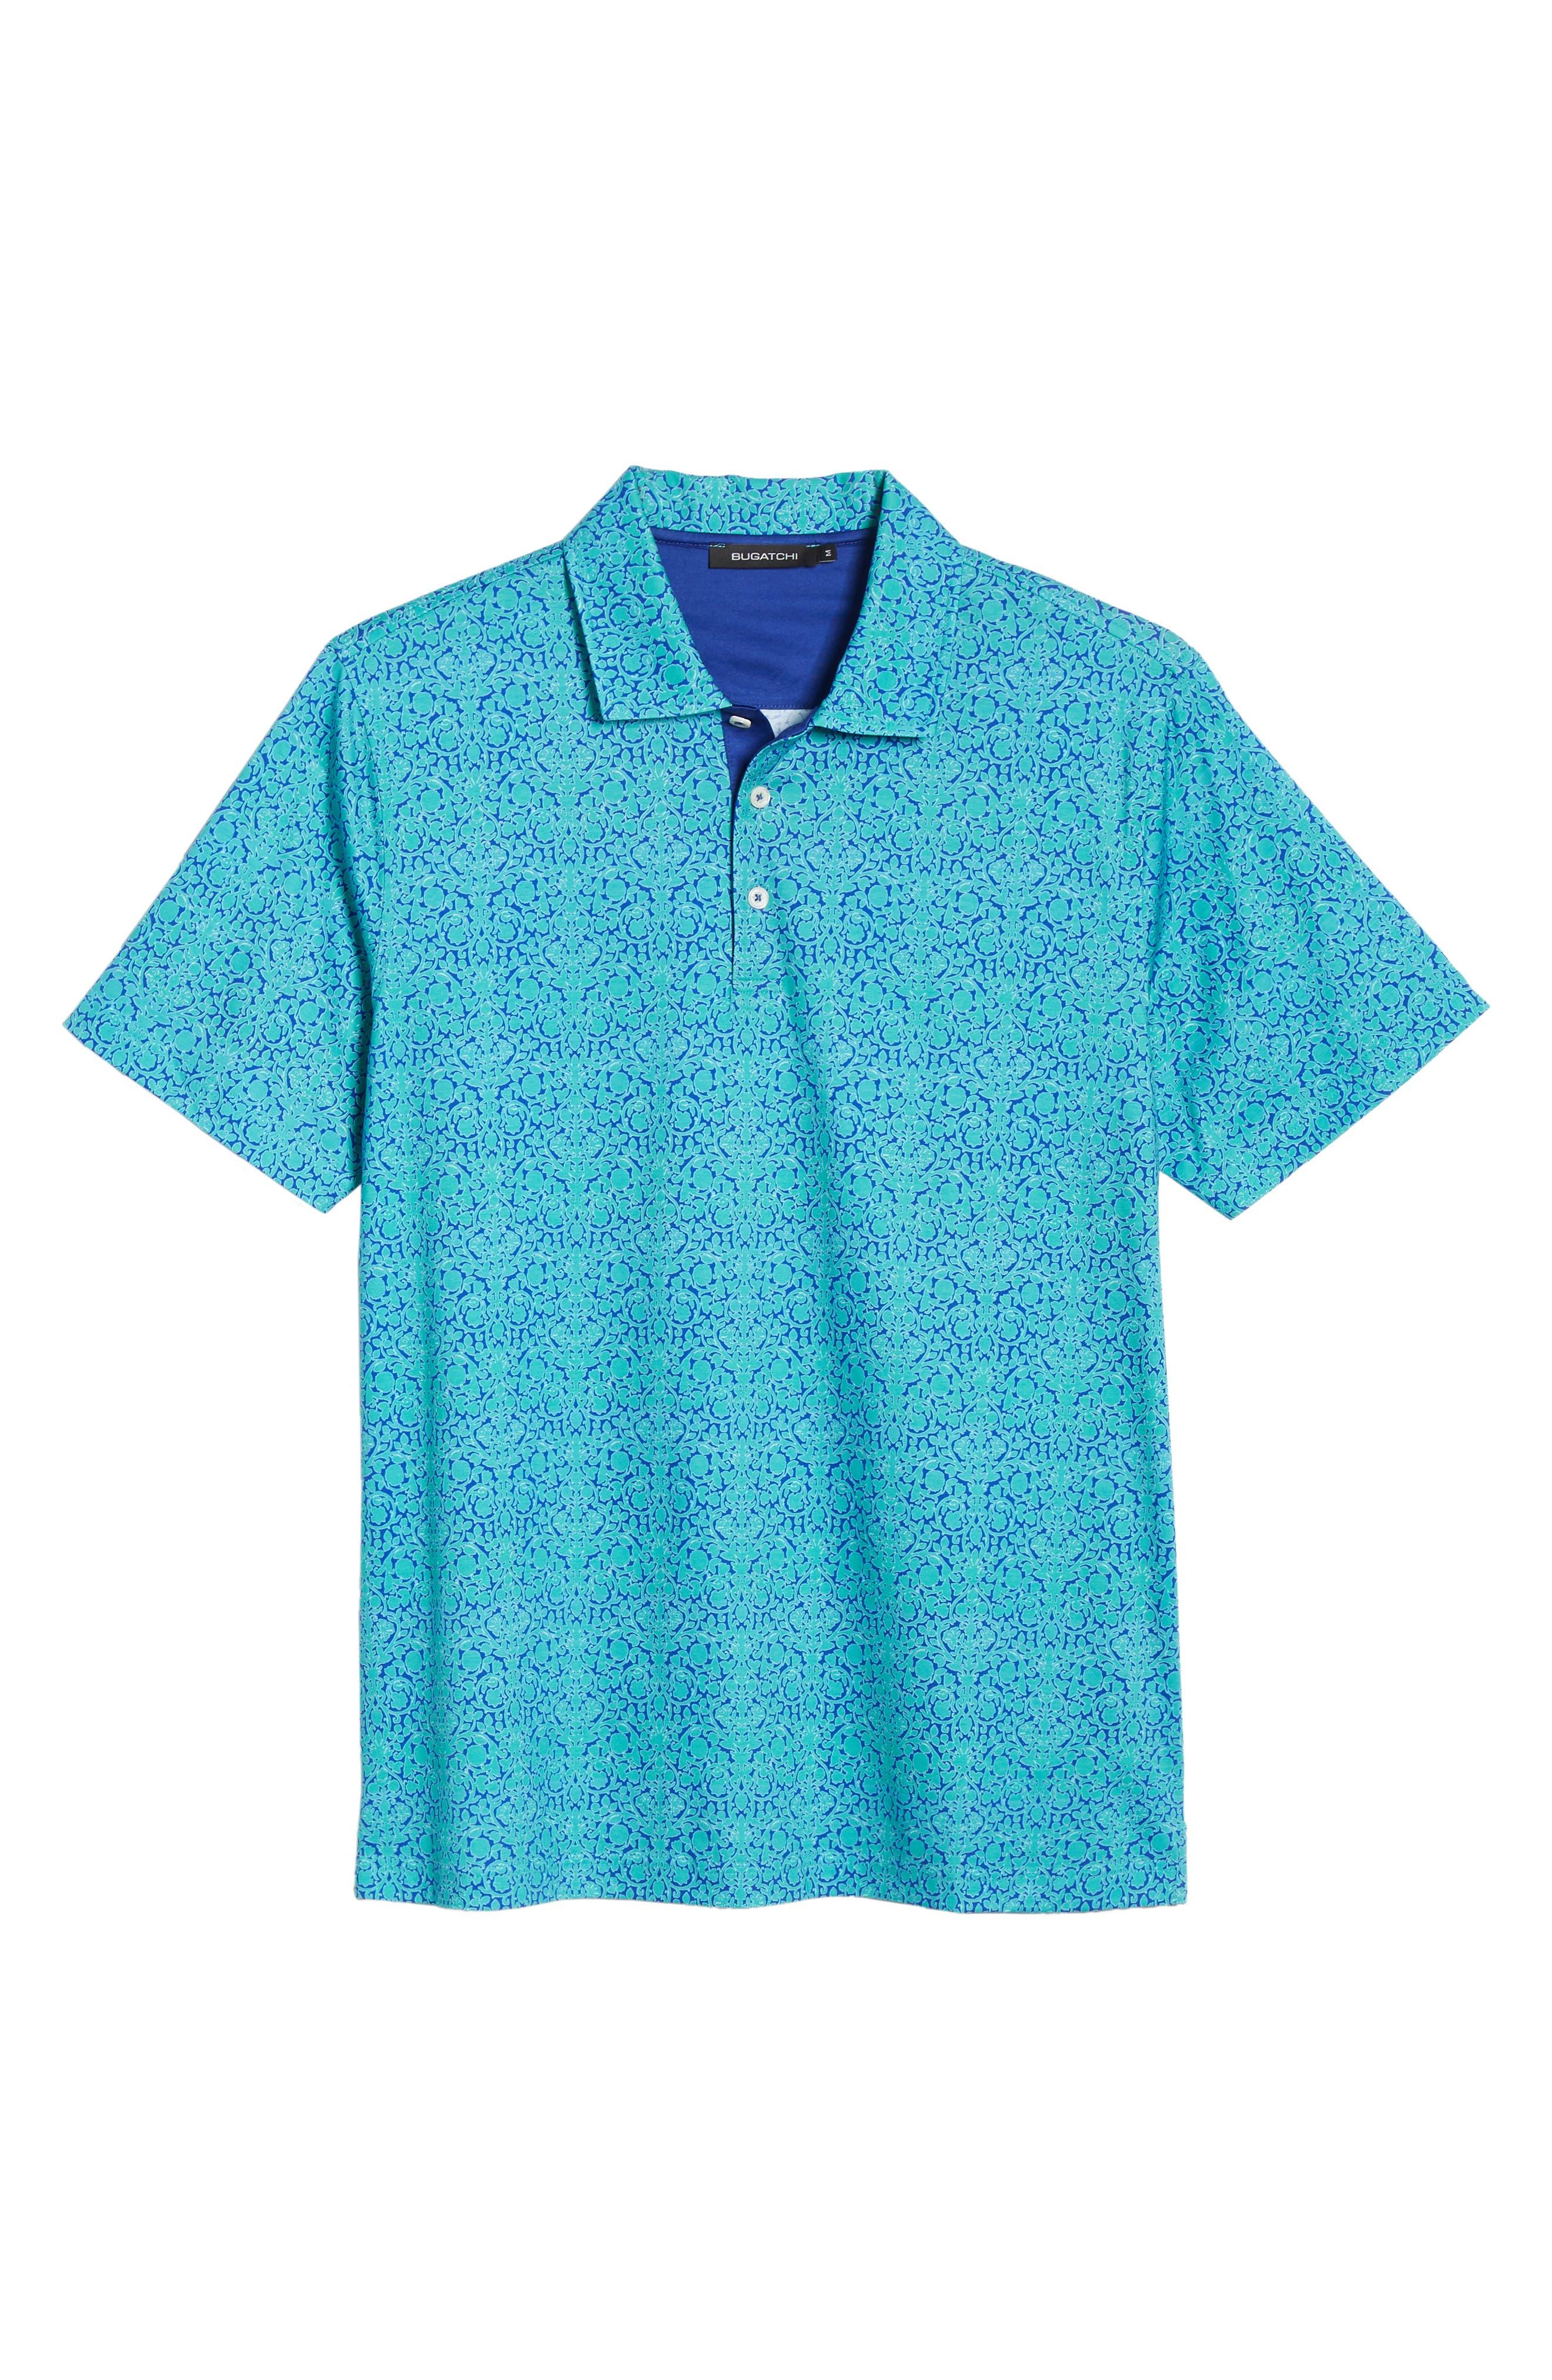 BUGATCHI,                             Regular Fit Digital Print Polo,                             Alternate thumbnail 6, color,                             EMERALD